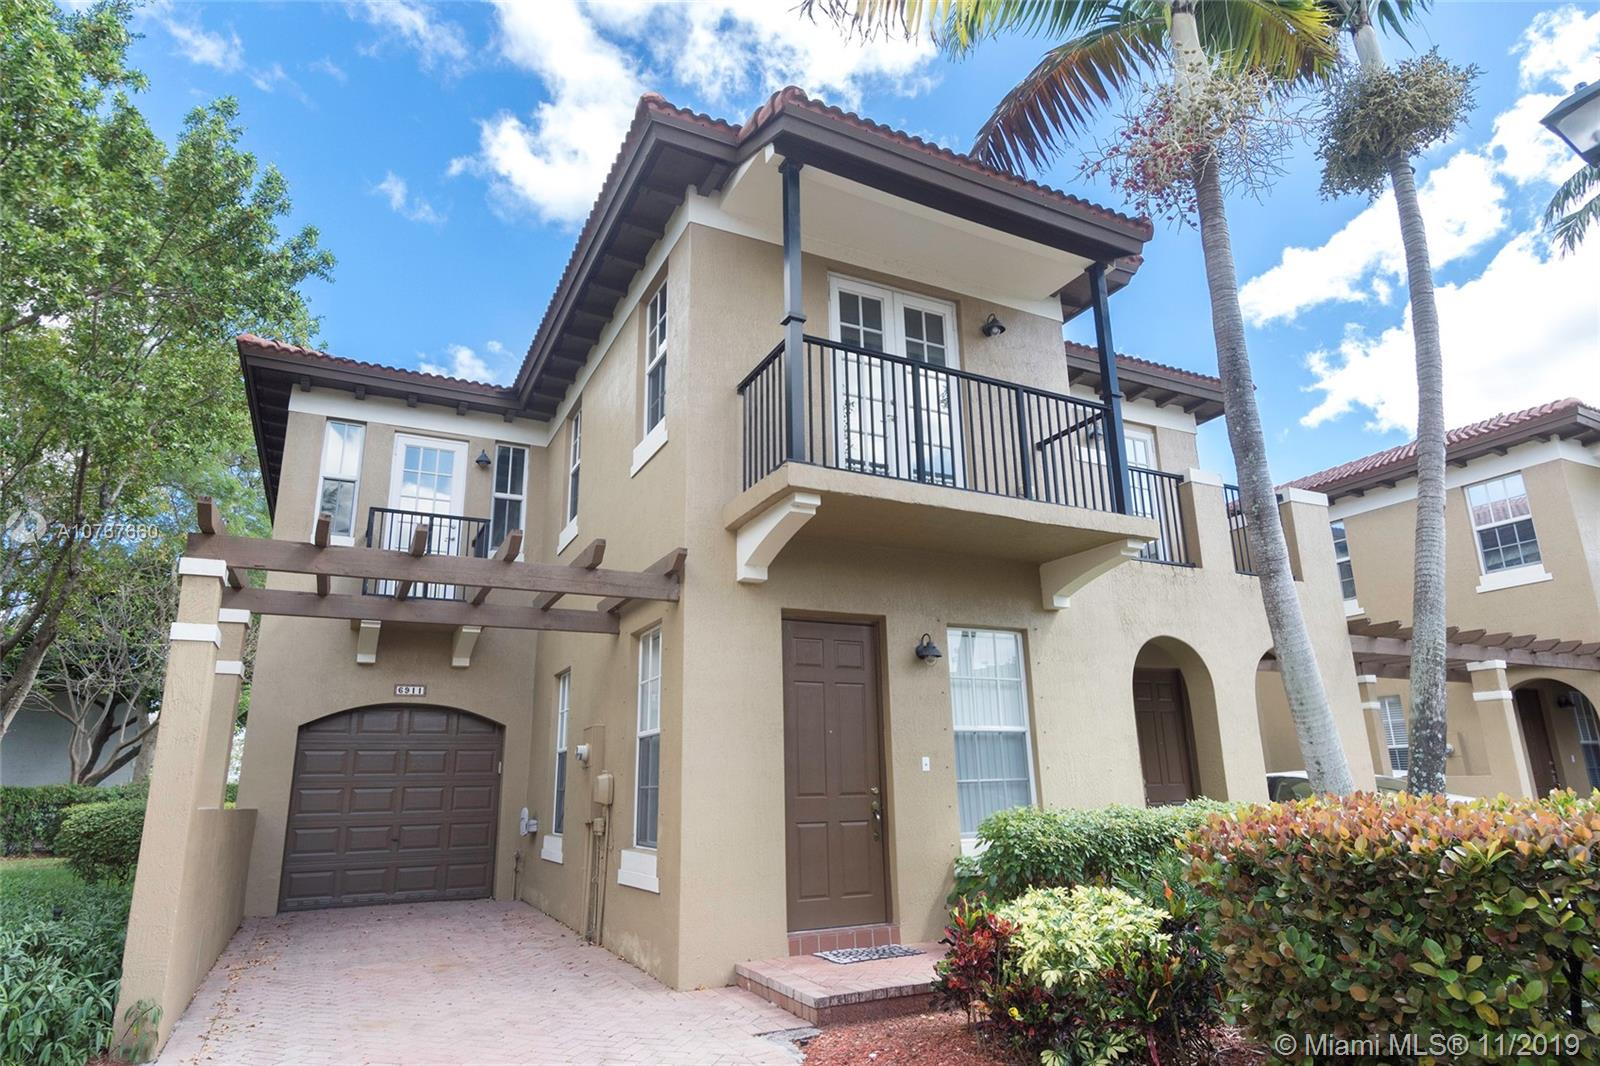 BACK ON MARKET! NEW REFRIGERATOR, NEW DISHWASHER, NEW WASHER & NEW DRYER. COME TO SEE IT! CORNER LAKEFRONT TOWNHOME IN GATED COMMUNITY, MASTER BEDROOM WITH HIS & HER WALK-IN CLOSET, MASTER BATH W/DOUBLE VANITIES, SEPARATE TUB & SHOWER. ANOTHER SPLIT BEDROOM WITH A MASTER BATH. THE 3ER BEDROOM CAN USE THE FULL BATHROOM AS PRIVATE. THE DINING & FAMILY ROOM WITH PATIO & LAKEVIEW. ONE CAR GARAGE WITH ADDITIONAL DRIVEWAY FOR PARKING FOR 2 MORE CARS, LAUNDRY ROOM ON 2ND FLOOR.